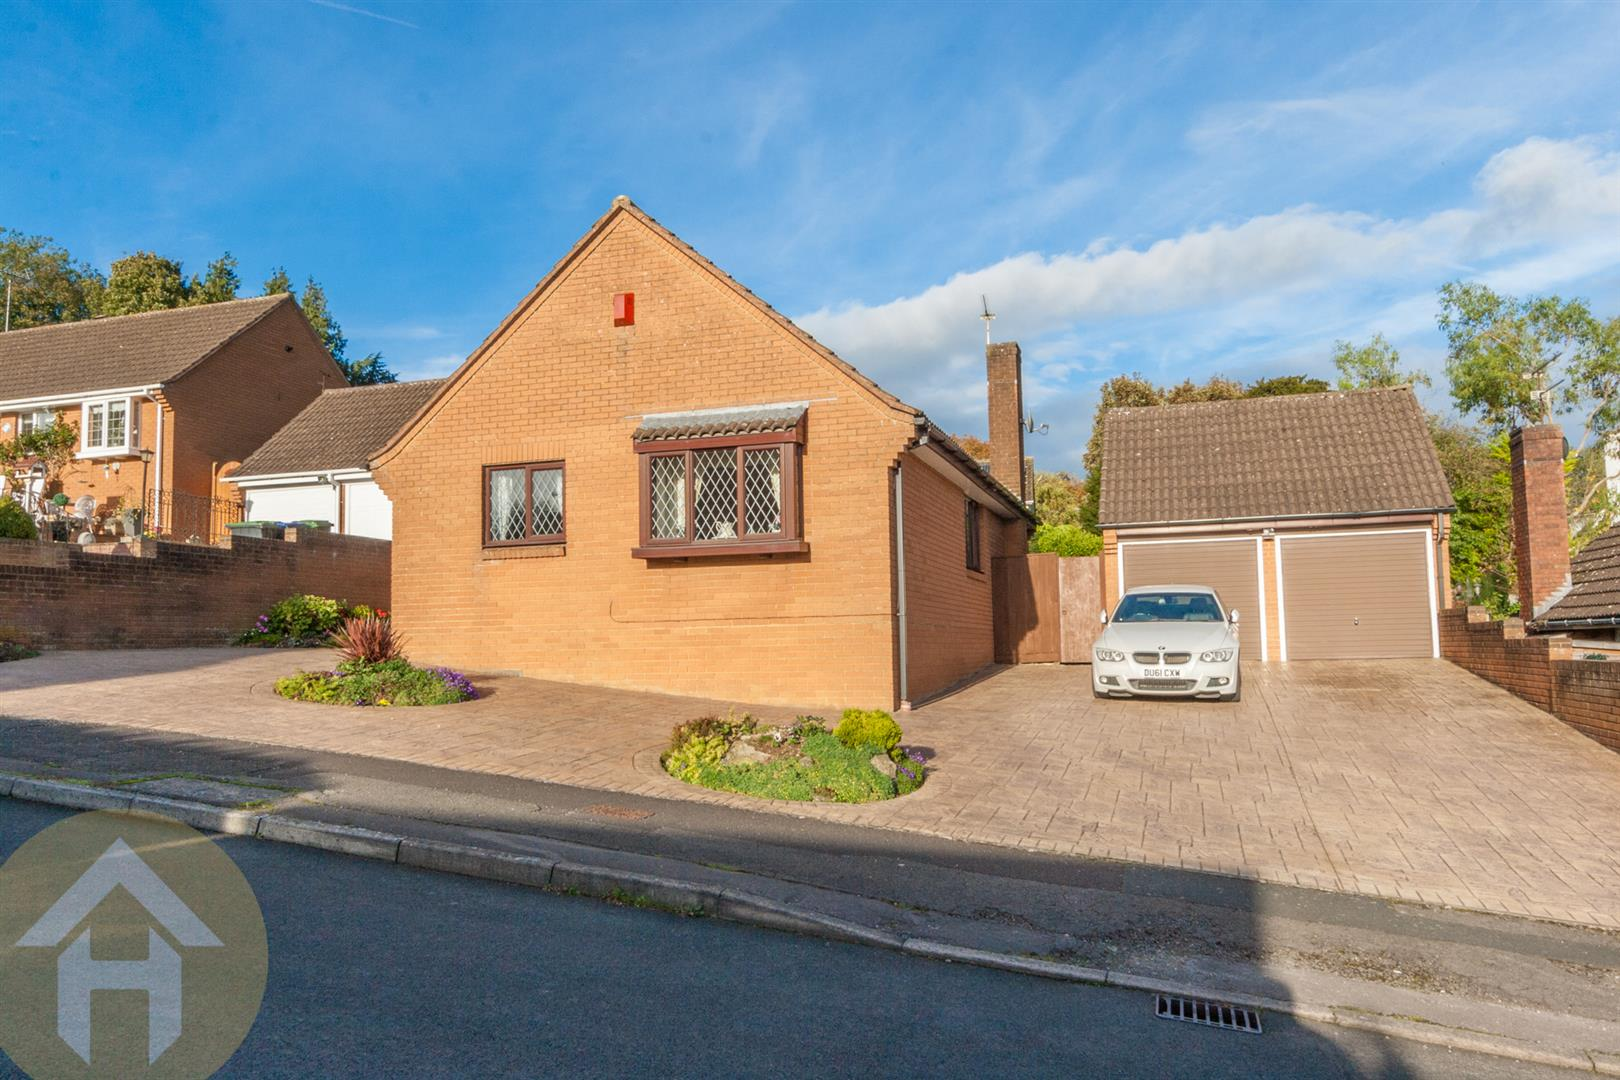 3 Bedrooms Detached Bungalow for sale in Glebe Road, Royal Wootton Bassett